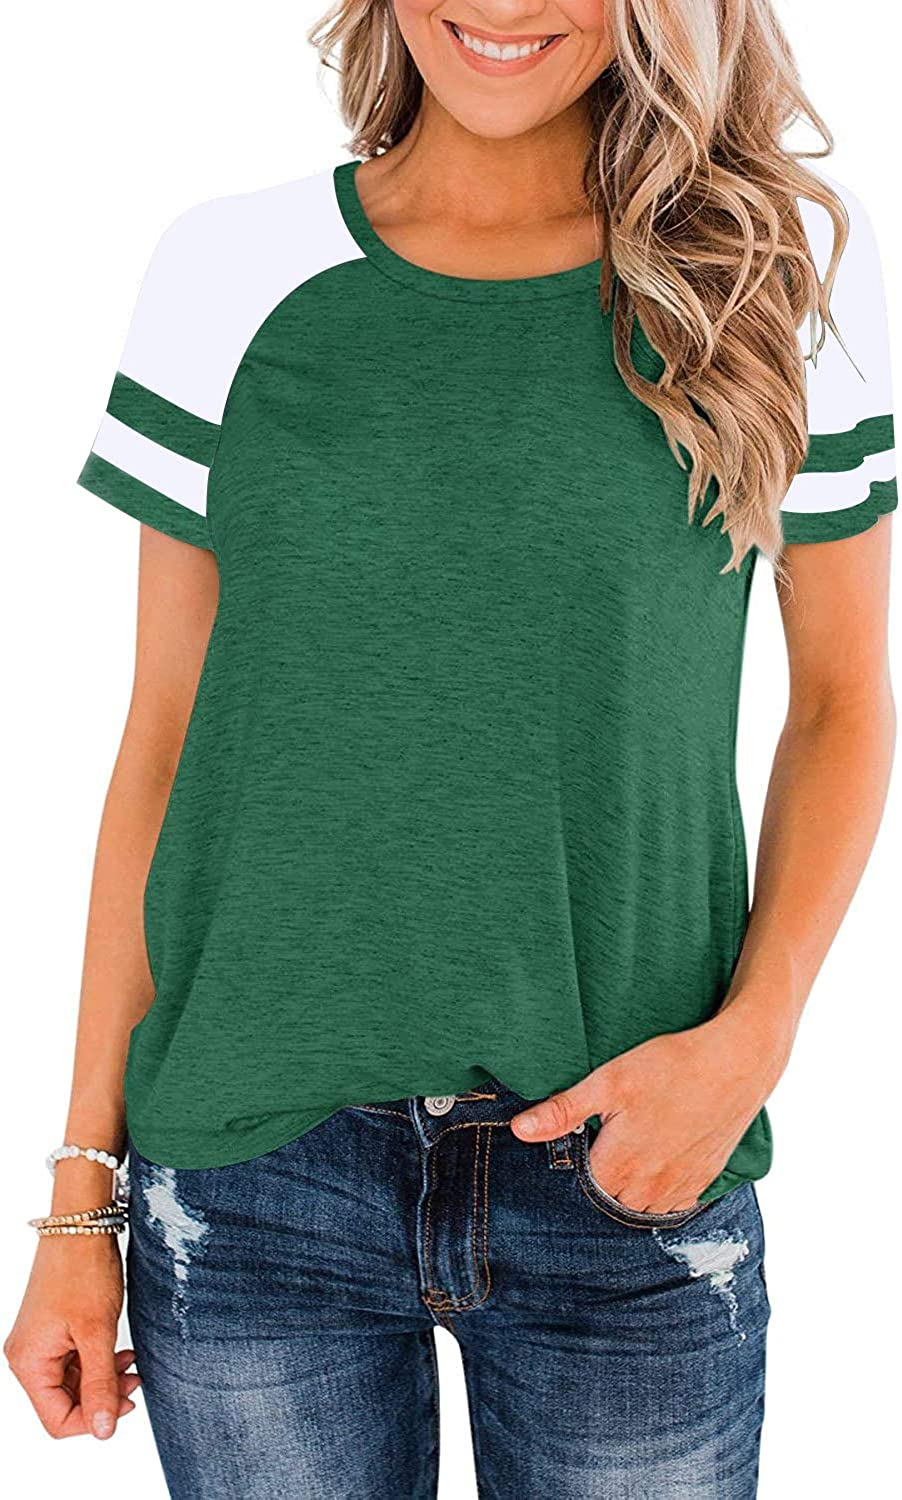 Heymiss Womens Tunic Tops Color Block Crewneck Shirts Casual Summer Loose Fit Workout T Shirt